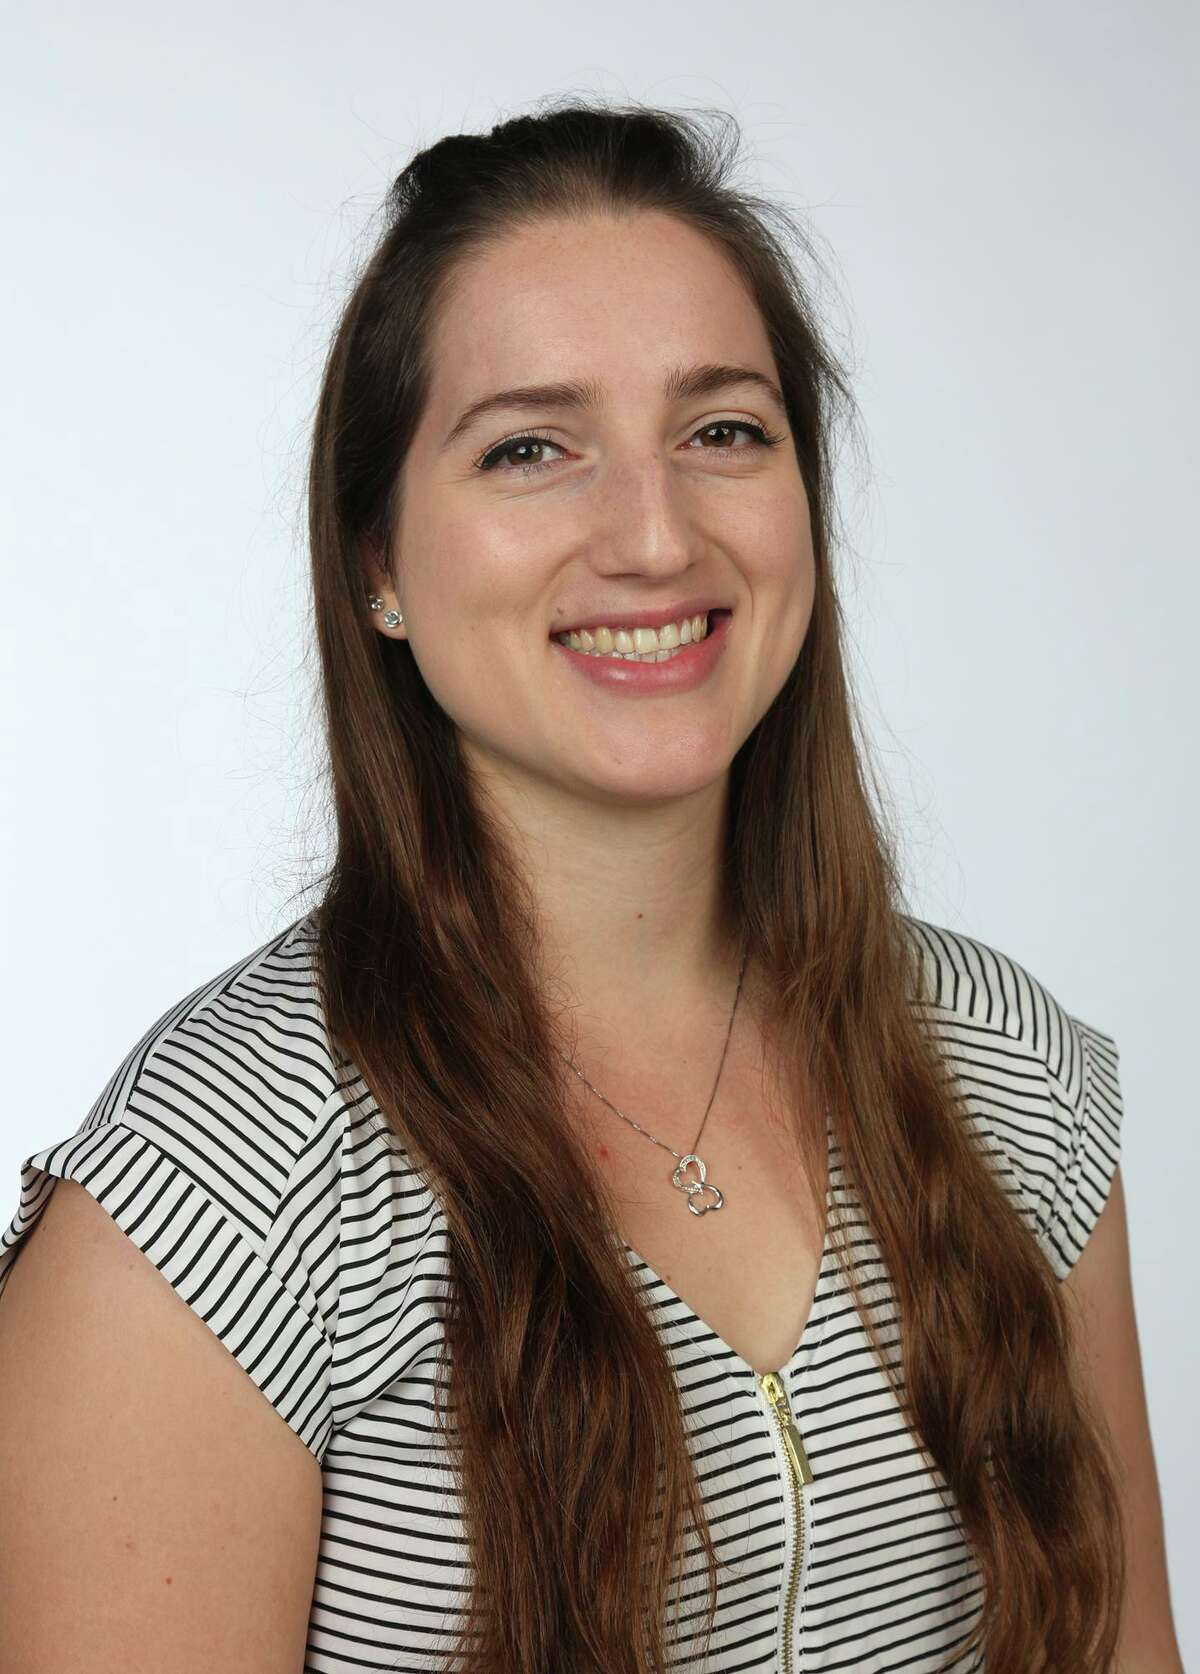 Lauren Caruba, the paper's lead medical reporter during the pandemic, won first prize in specialty reporting in the annual Texas Associated Press Managing Editors contest.